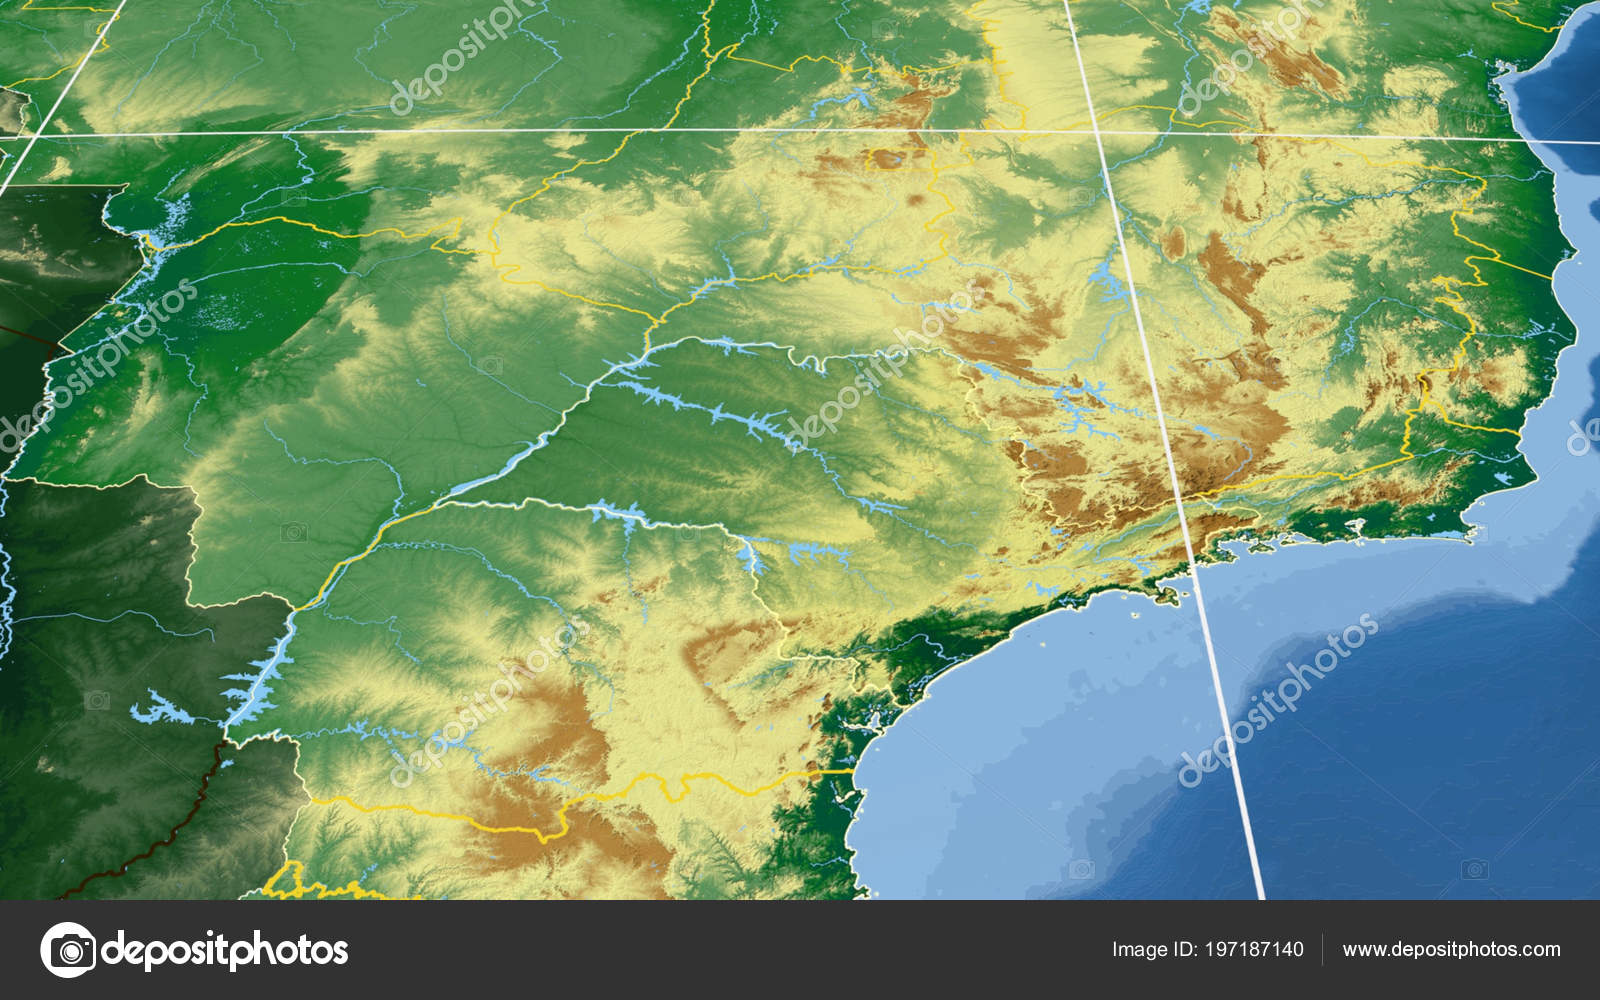 Sao Paulo Region Brazil Outlined Color Physical Map Stock Photo